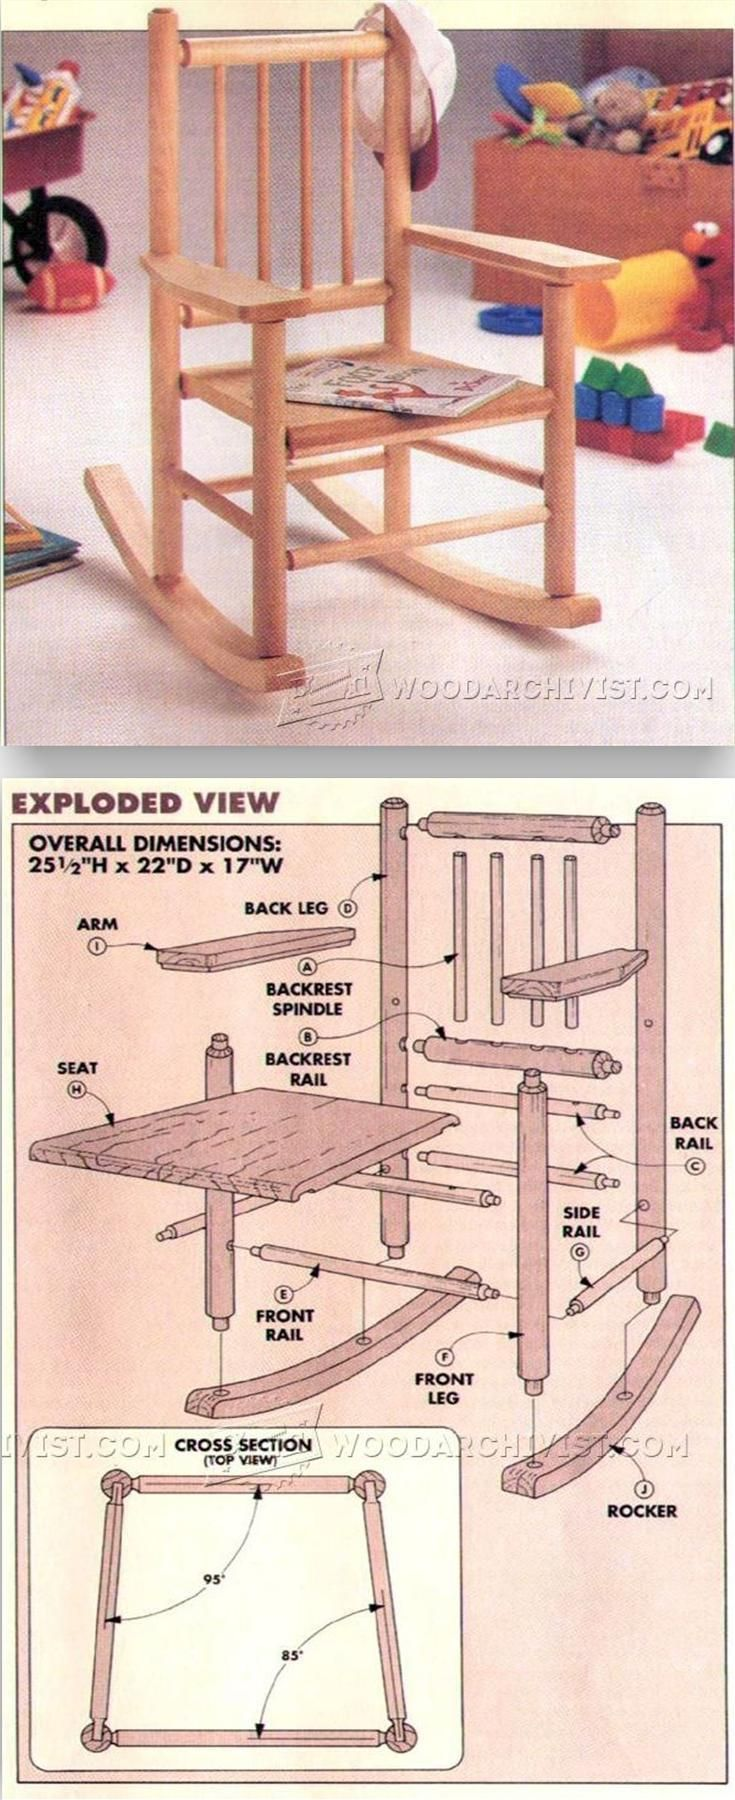 Childs Rocking Chair Plans - Children's Furniture Plans and Projects | WoodArchivist.com